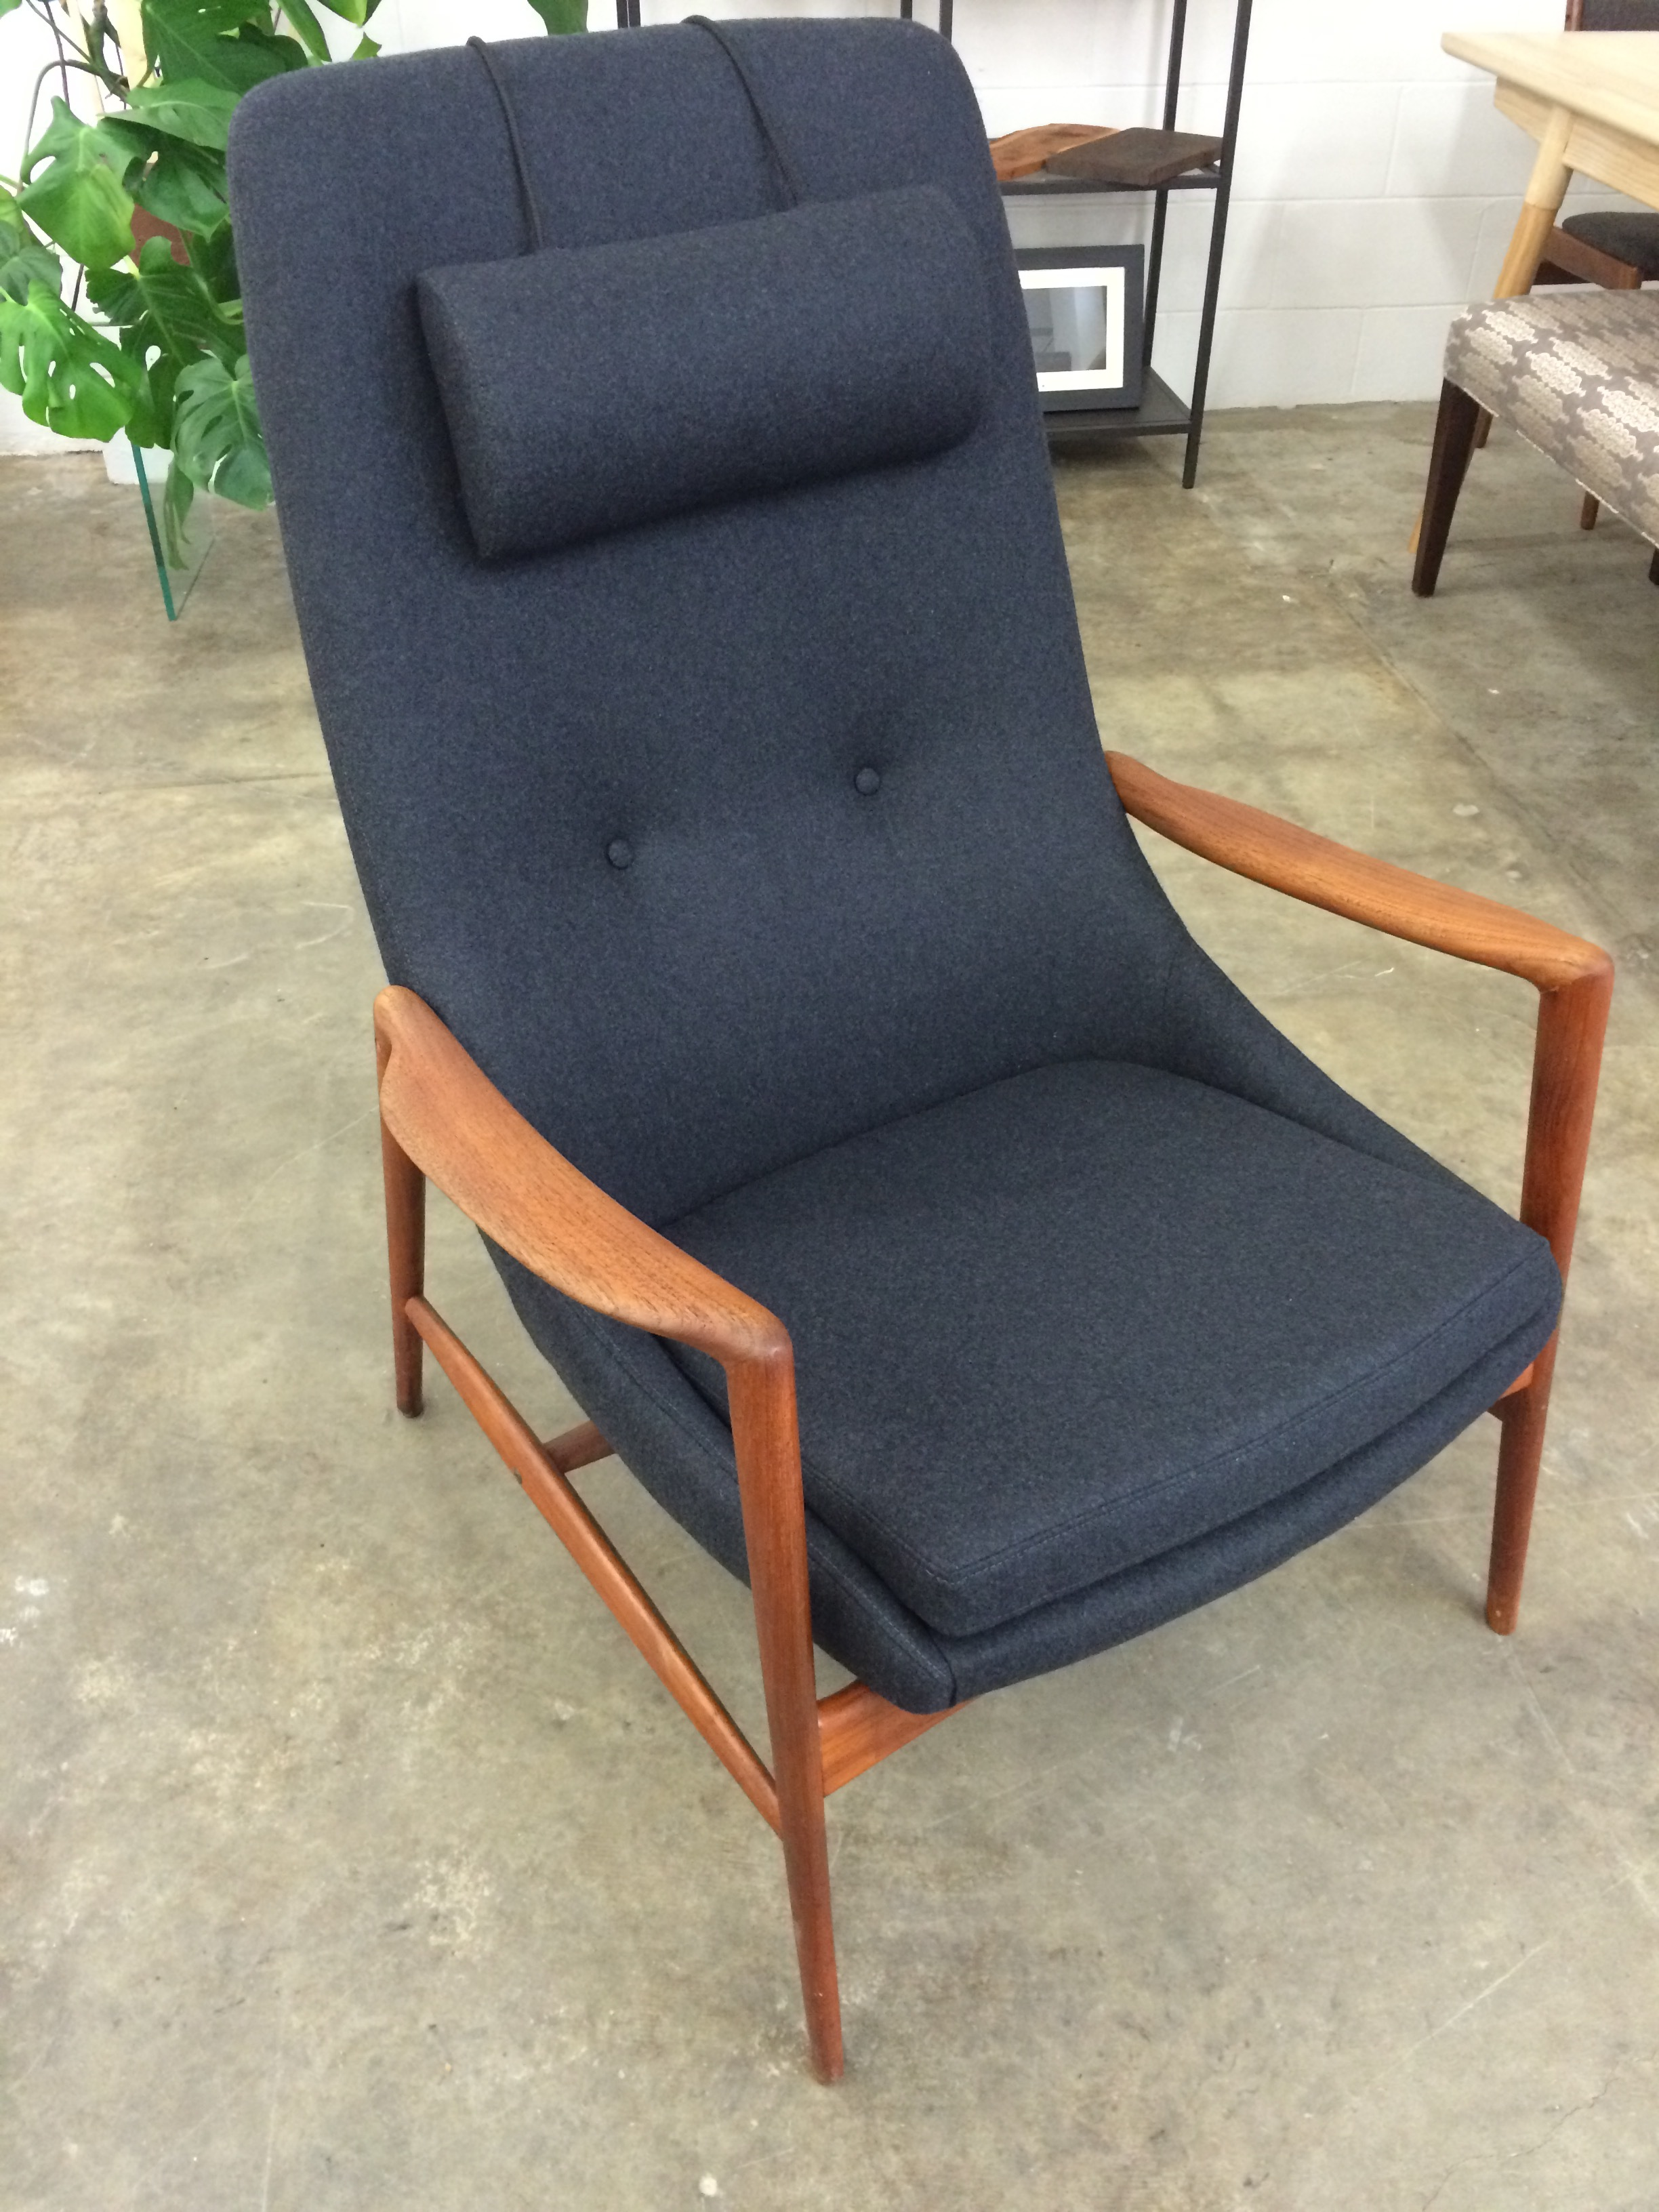 Mid Century Modern teak arm chair, with button tufting and a weighted headrest.